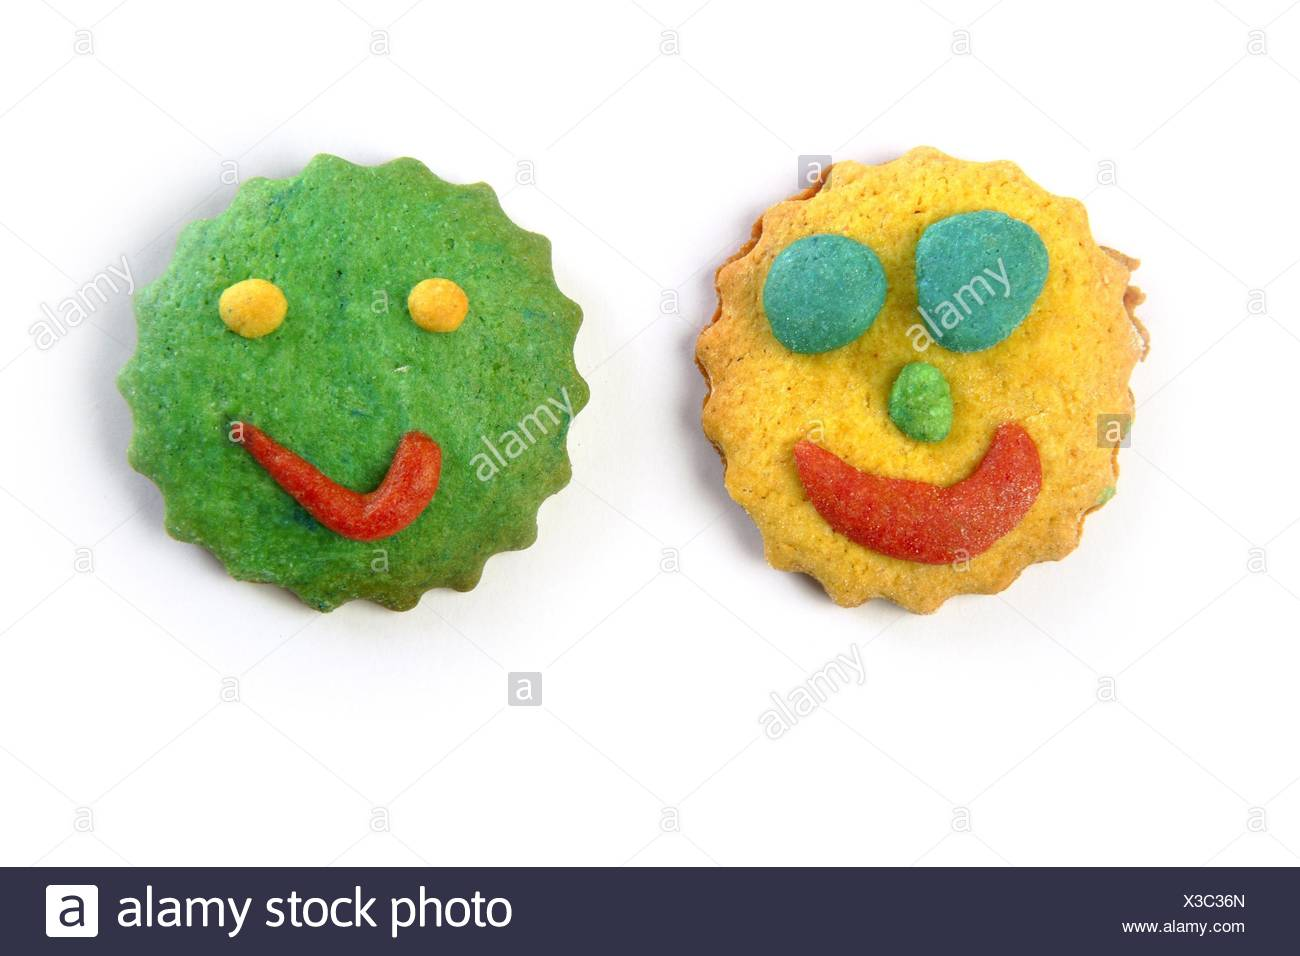 Funny Smiley Faces Biscuits Colorful Round Shape Stock Photo